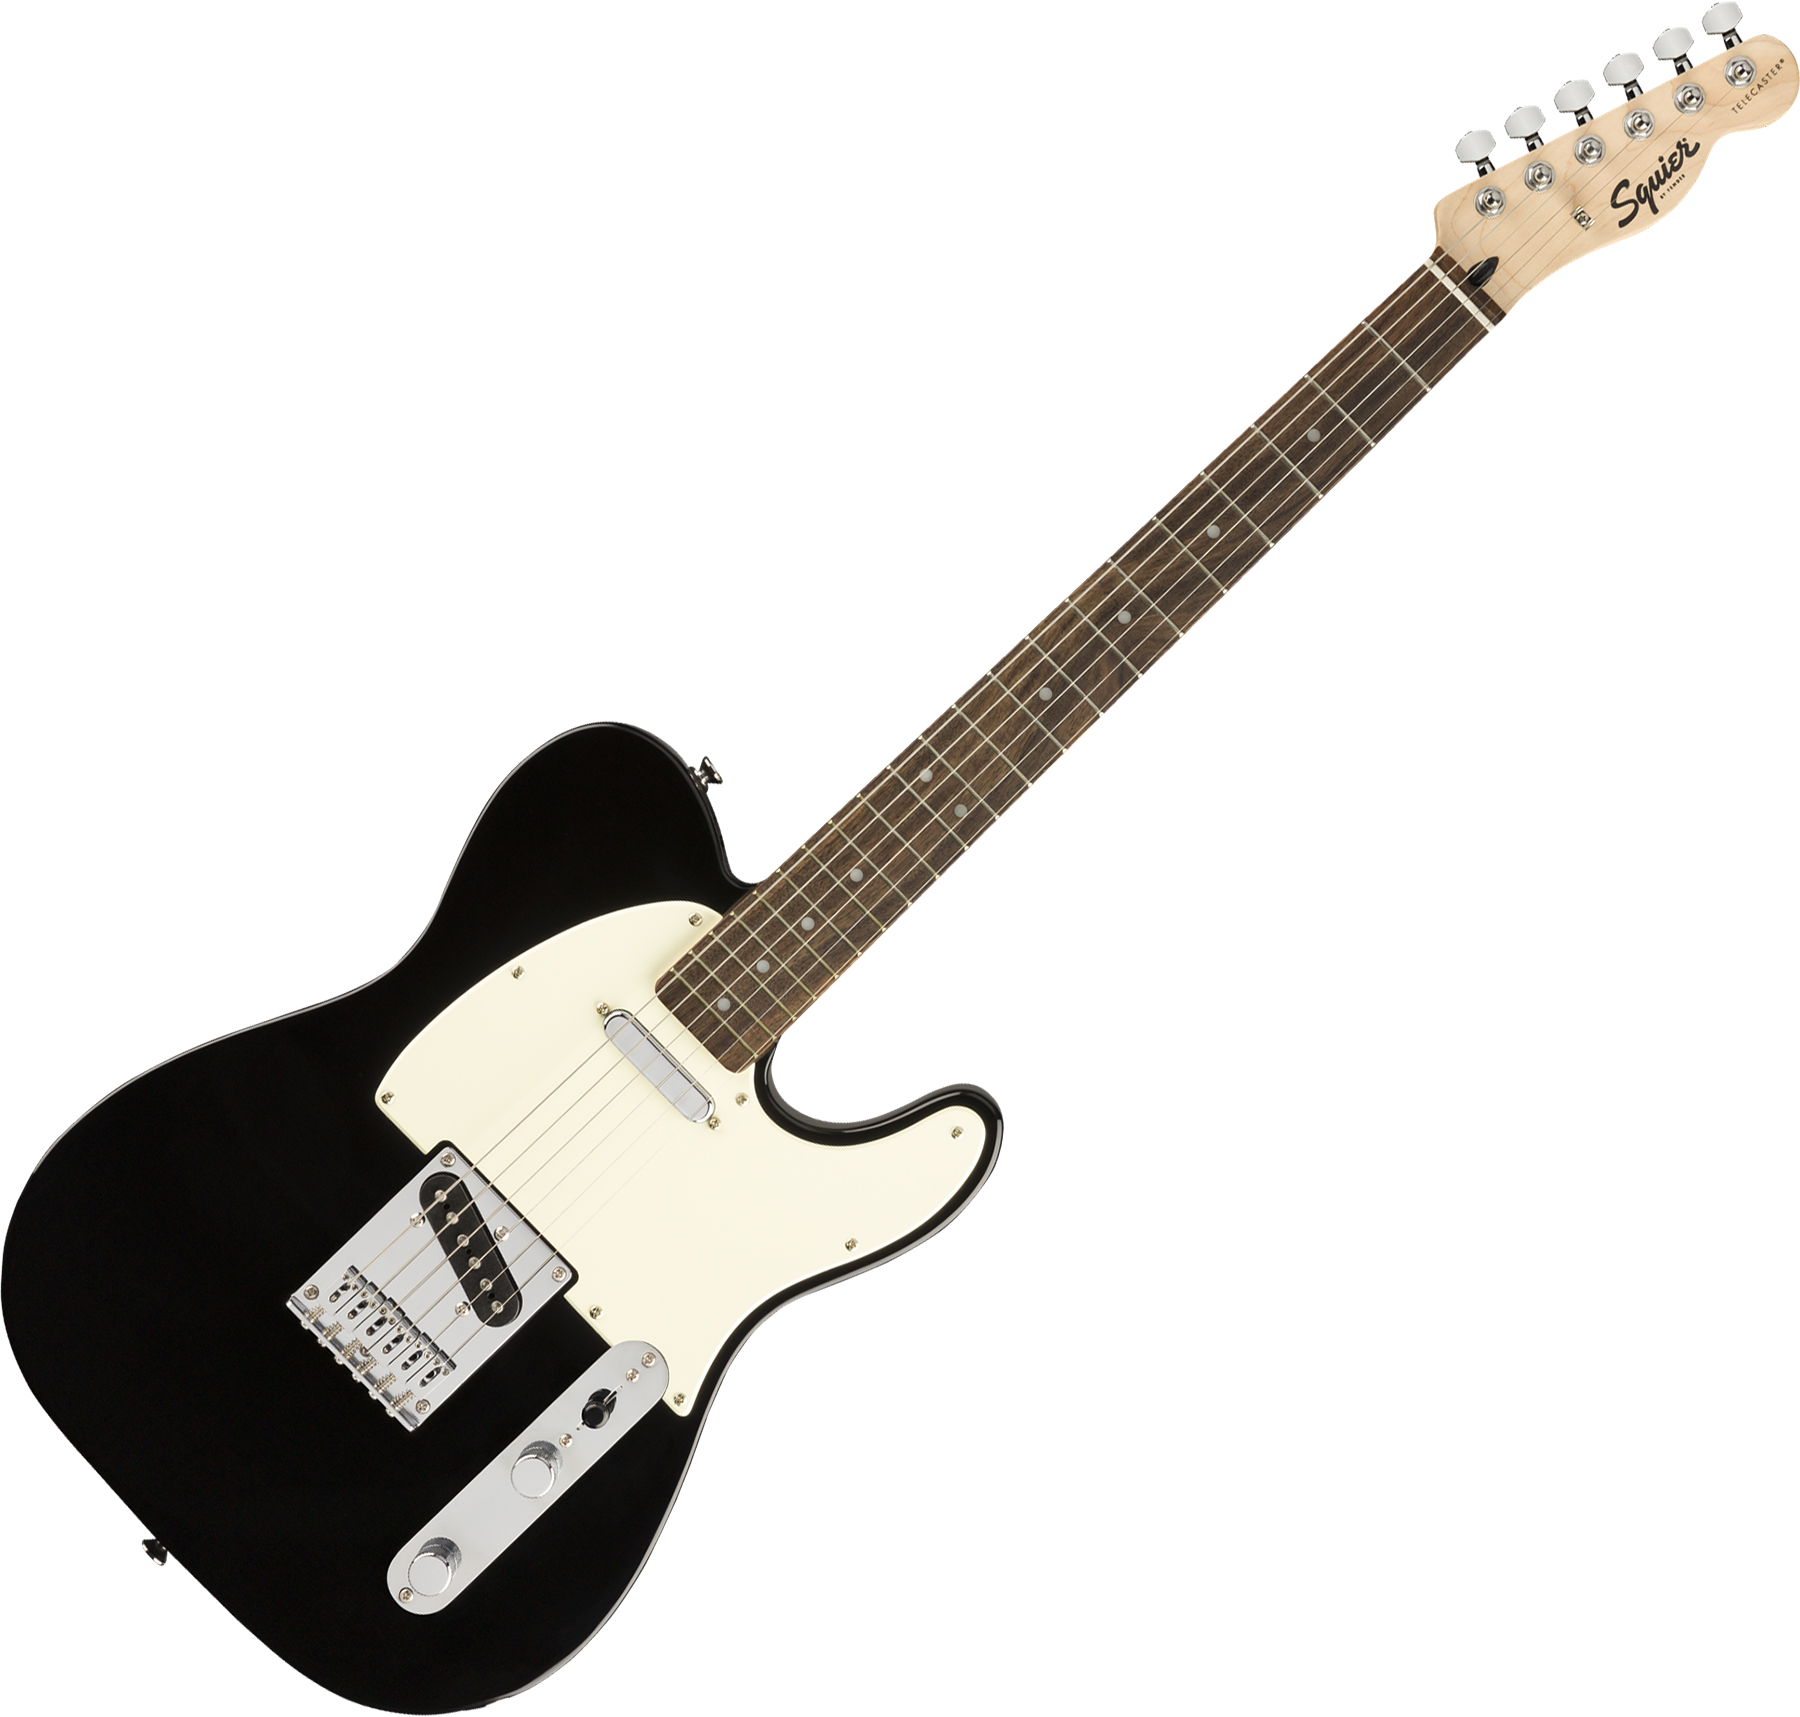 Squier Bullet Telecaster Black electric guitar